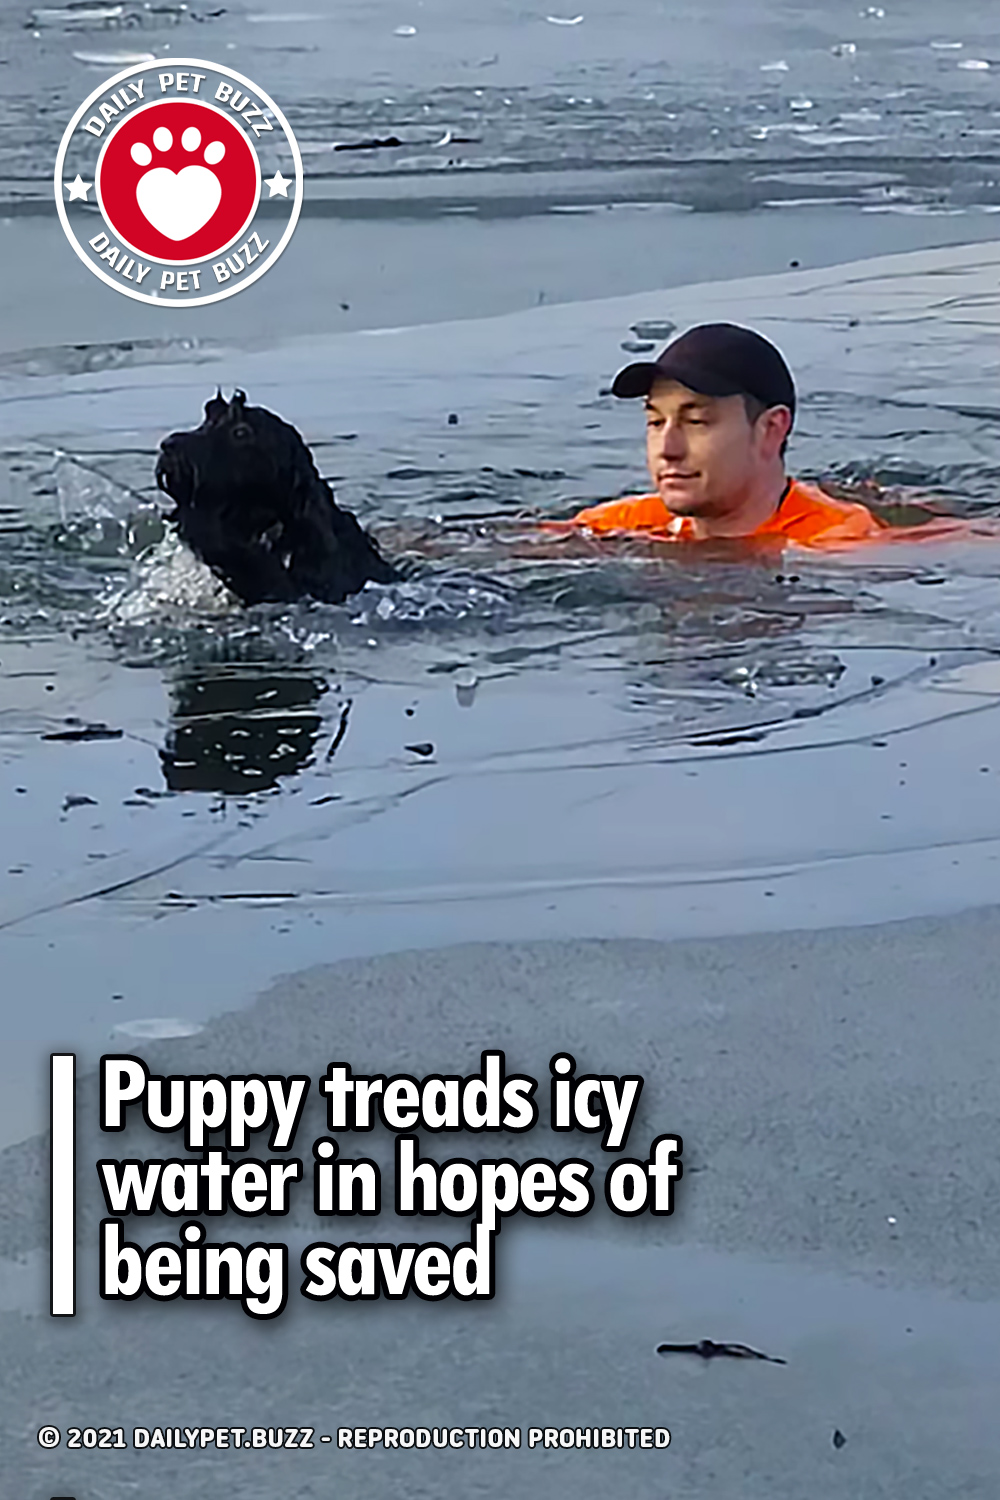 Puppy treads icy water in hopes of being saved